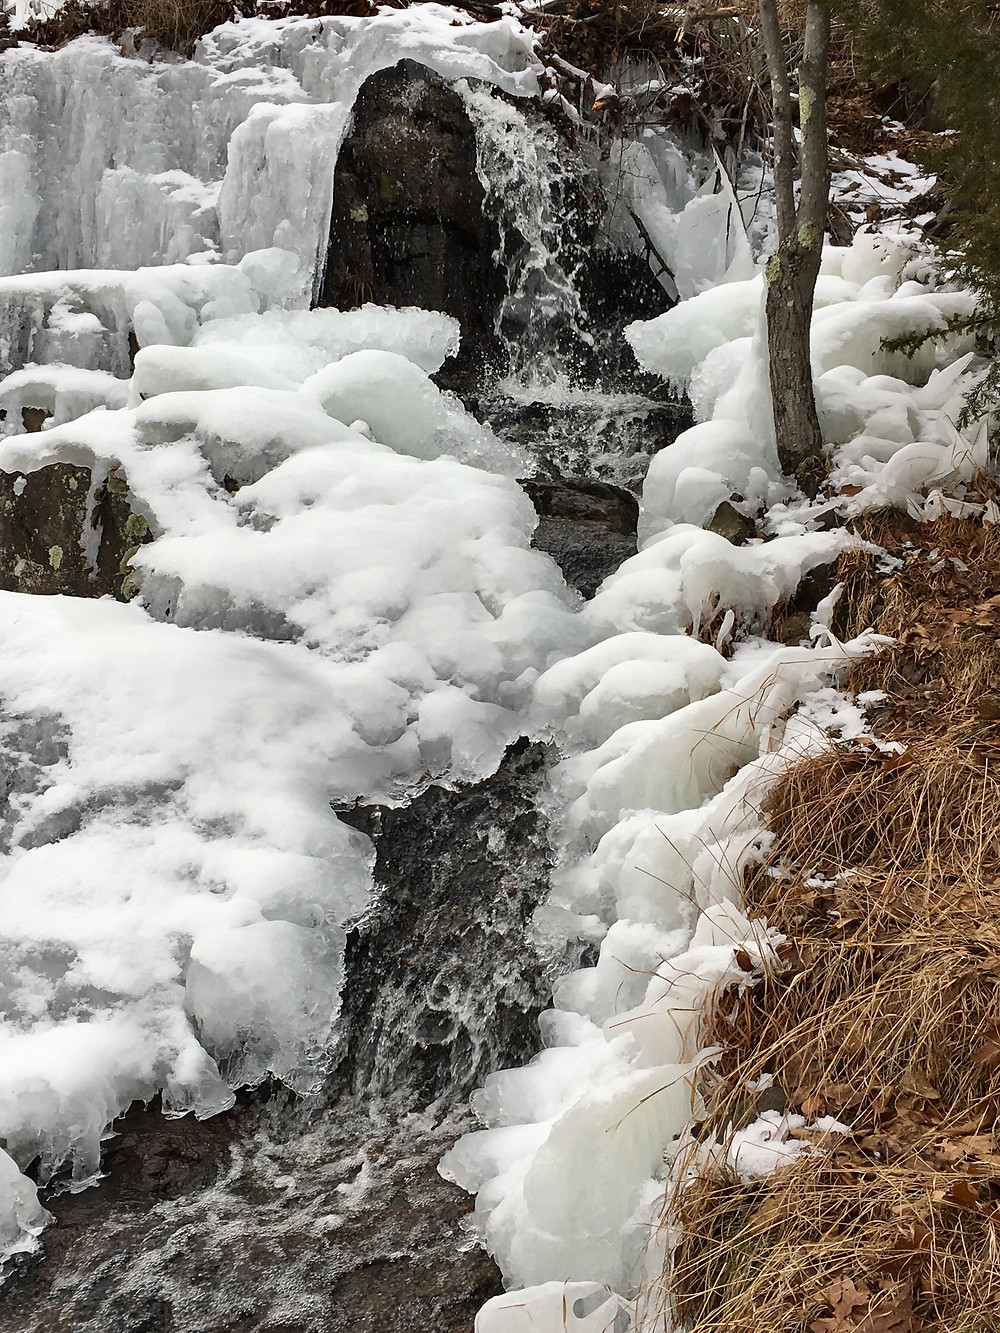 snow and ice covering a waterfall in the forest of the Middlesex Fells Reservation just outside Boston, Massachusetts